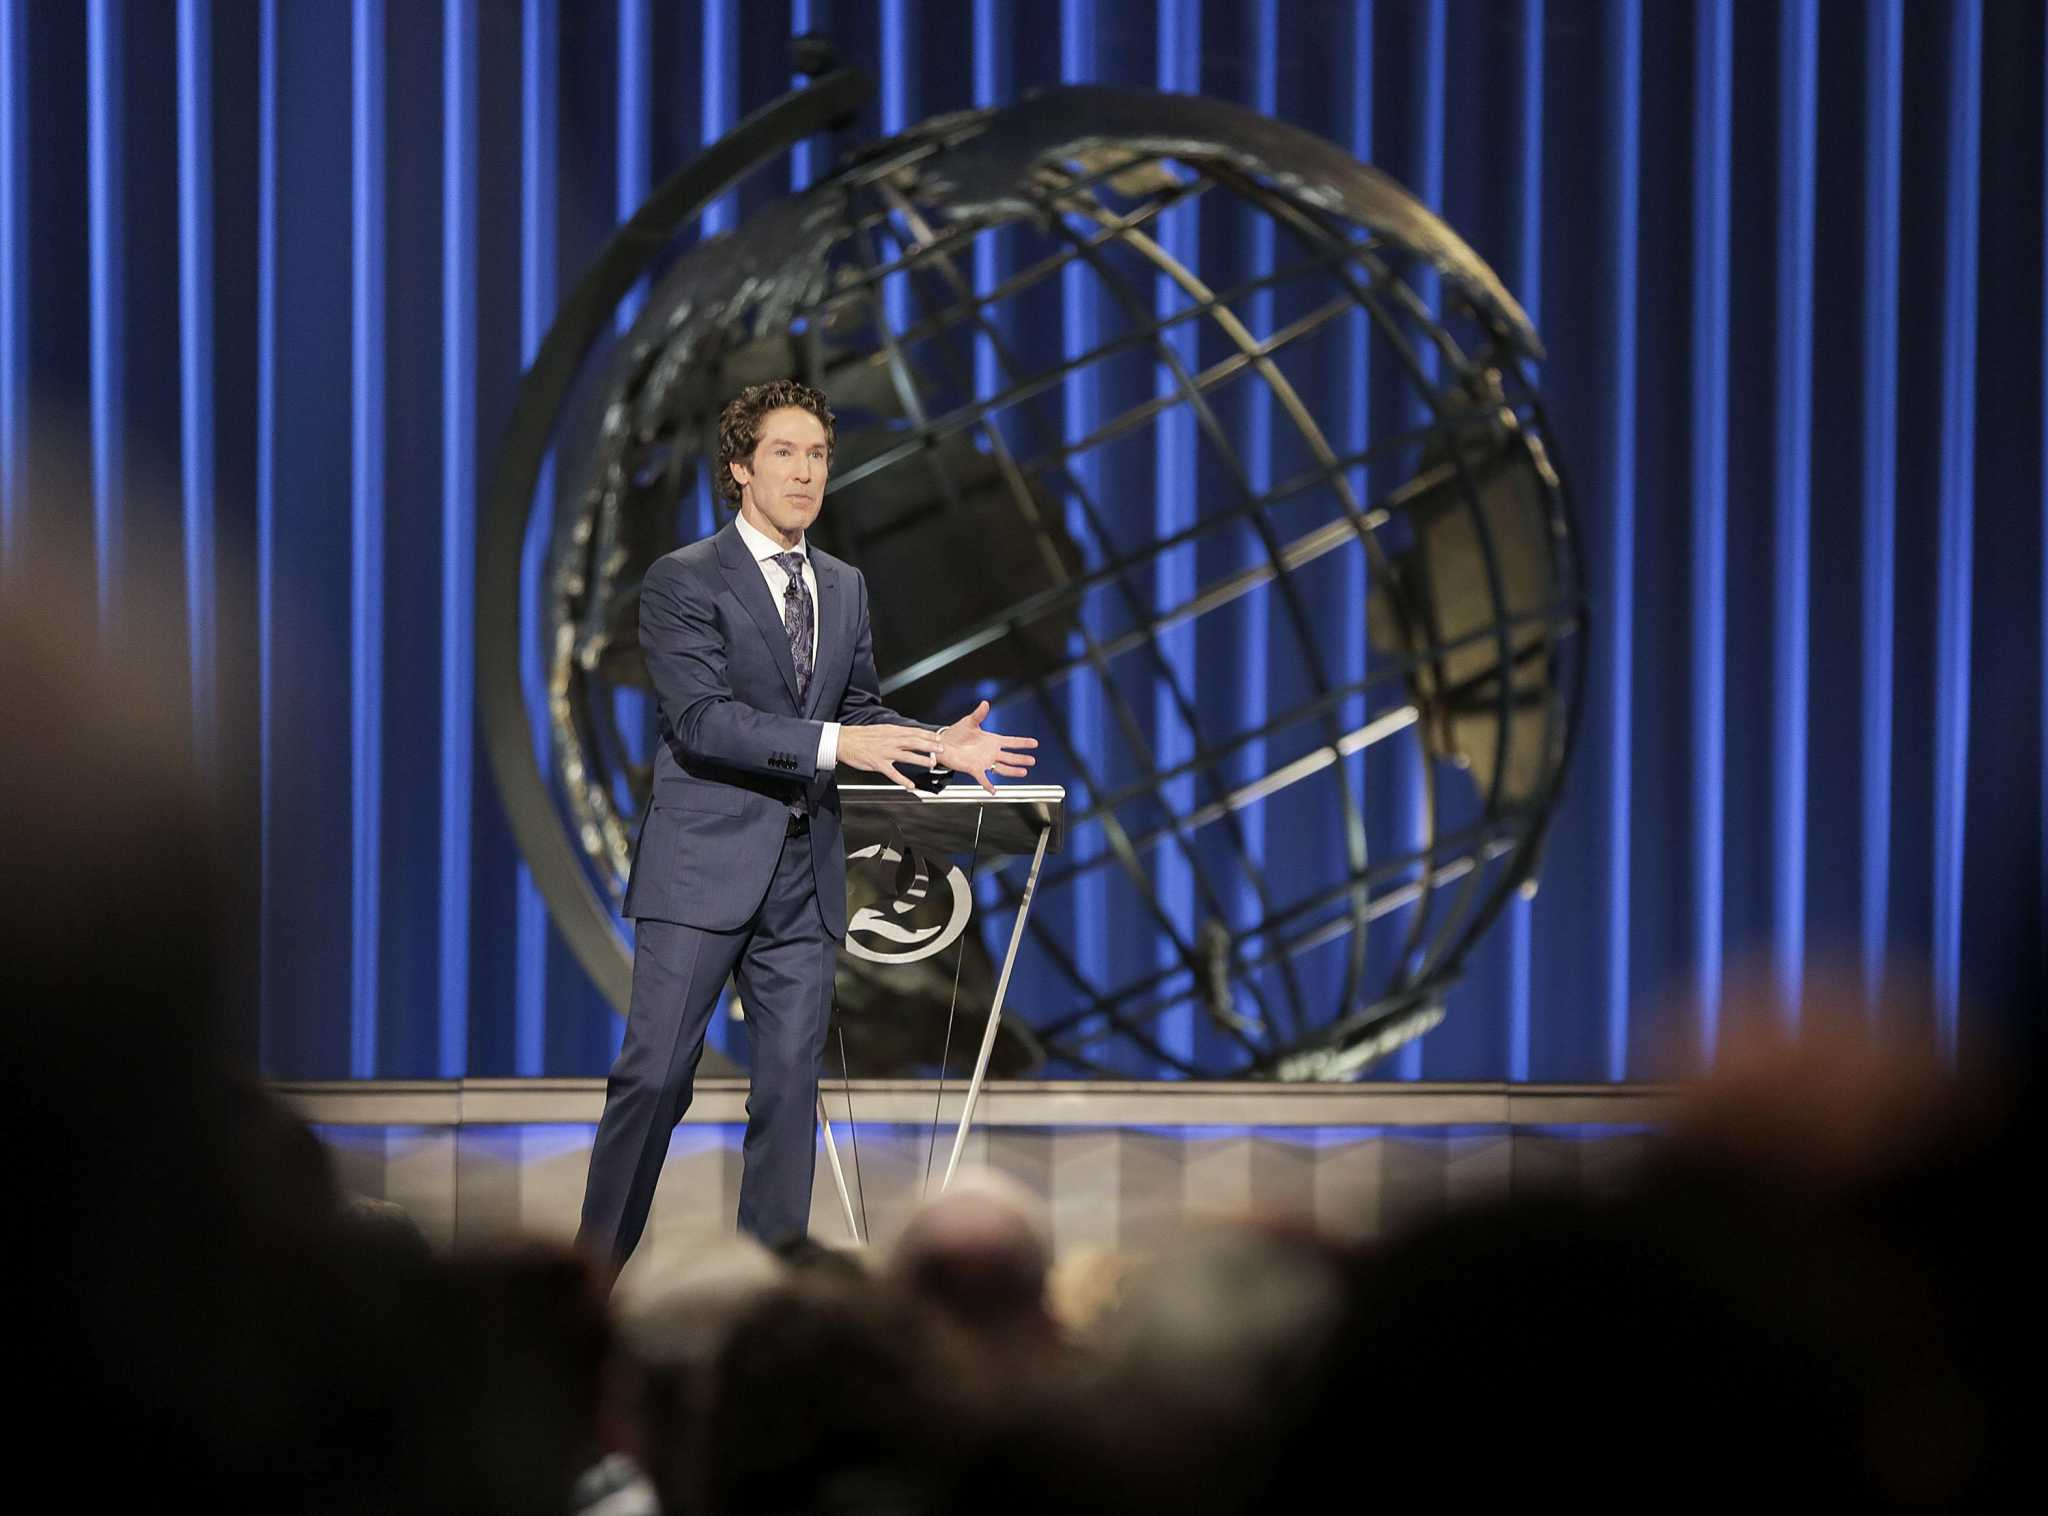 Joel Osteen's 'Today Show' appearance did not go over well